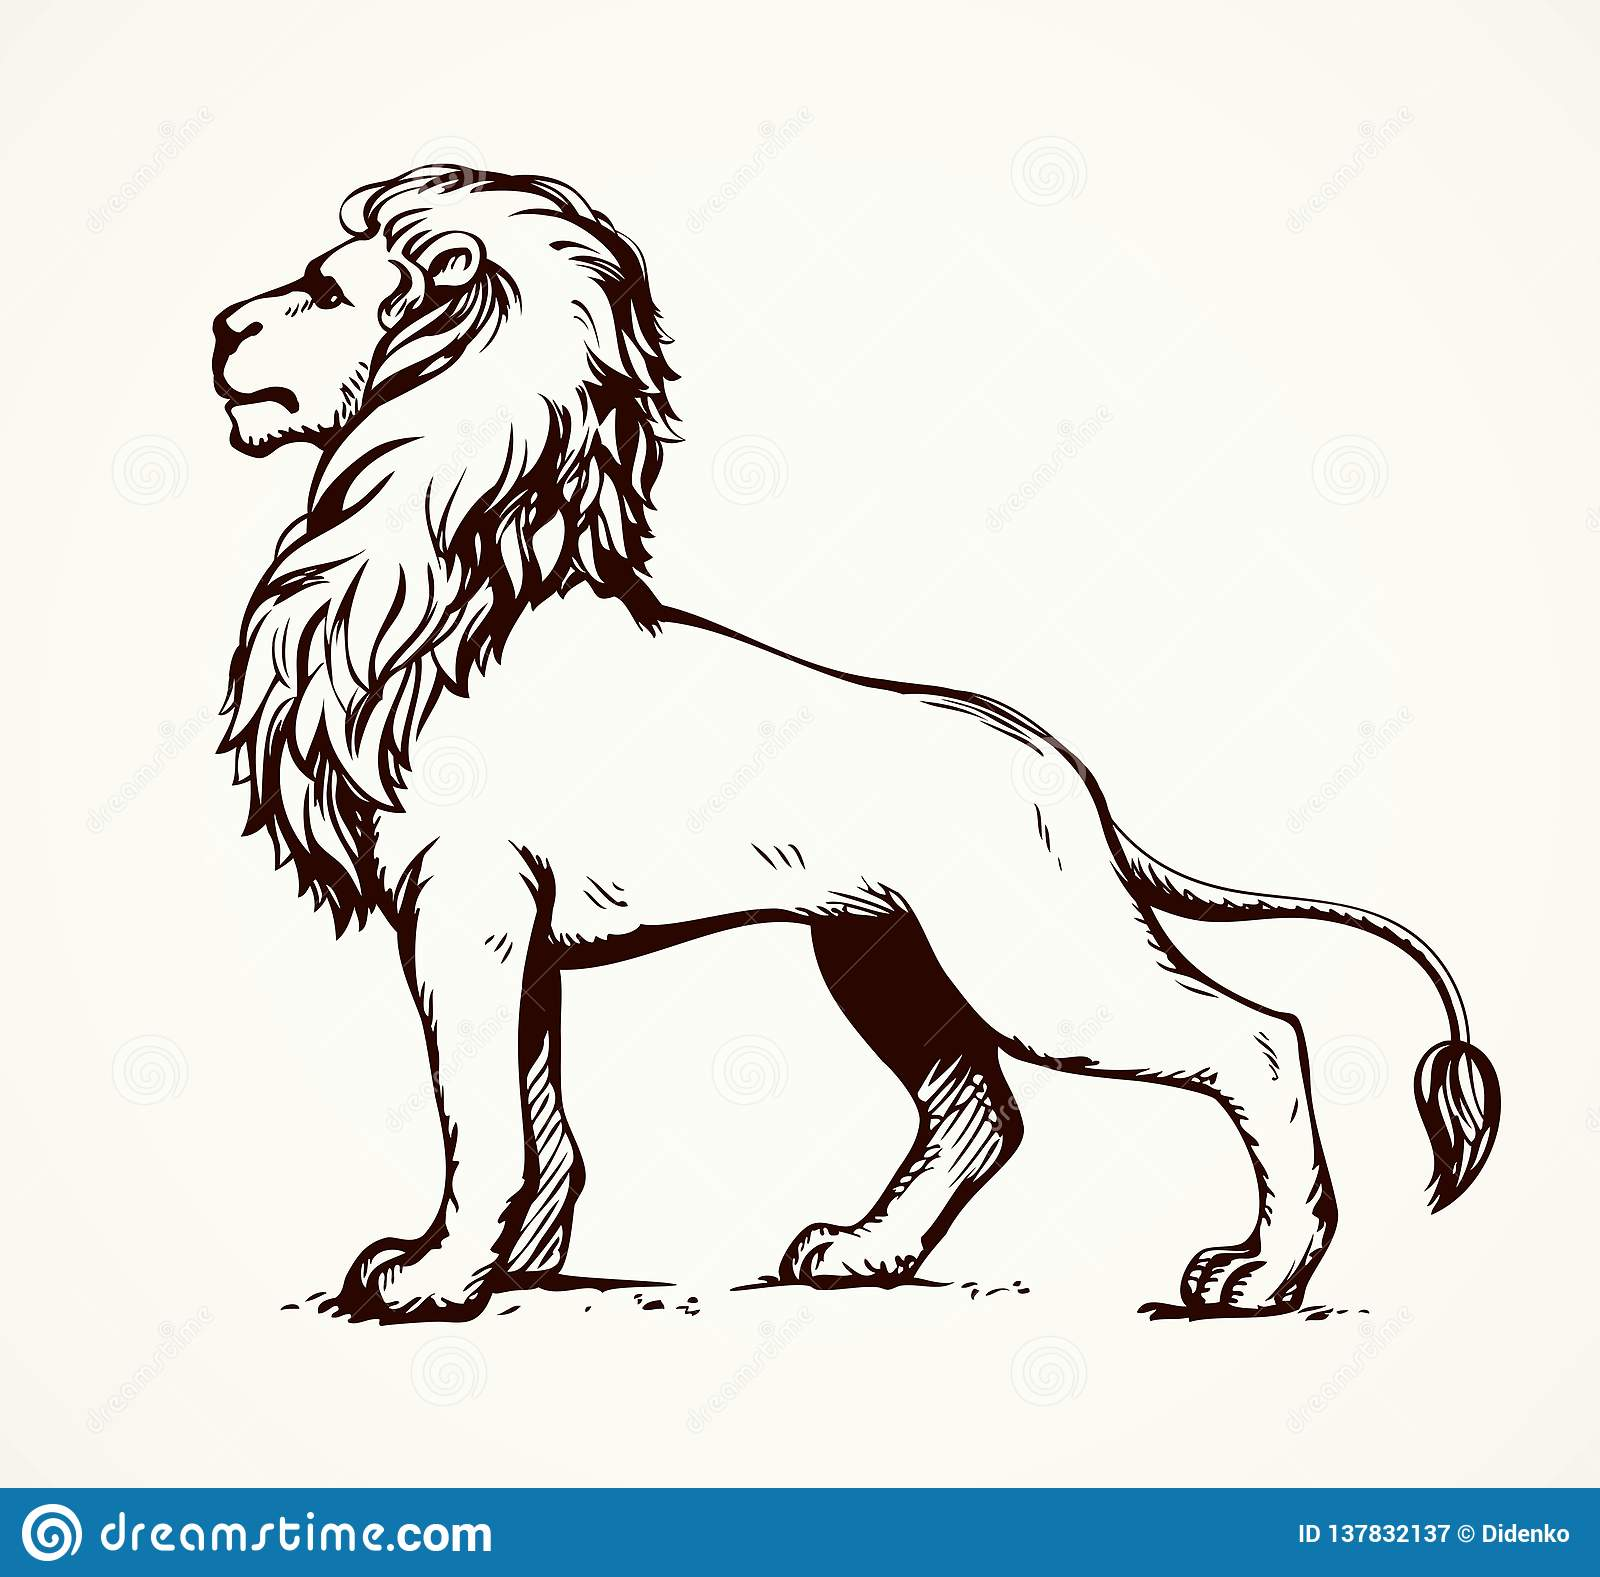 Lion Vector Drawing Stock Vector Illustration Of Africa 137832137 Thin line leo outline icon vector illustration. https www dreamstime com beautiful african proud powerful nobility big leo standing fierce looking prey freehand ink drawn background sketchy image137832137